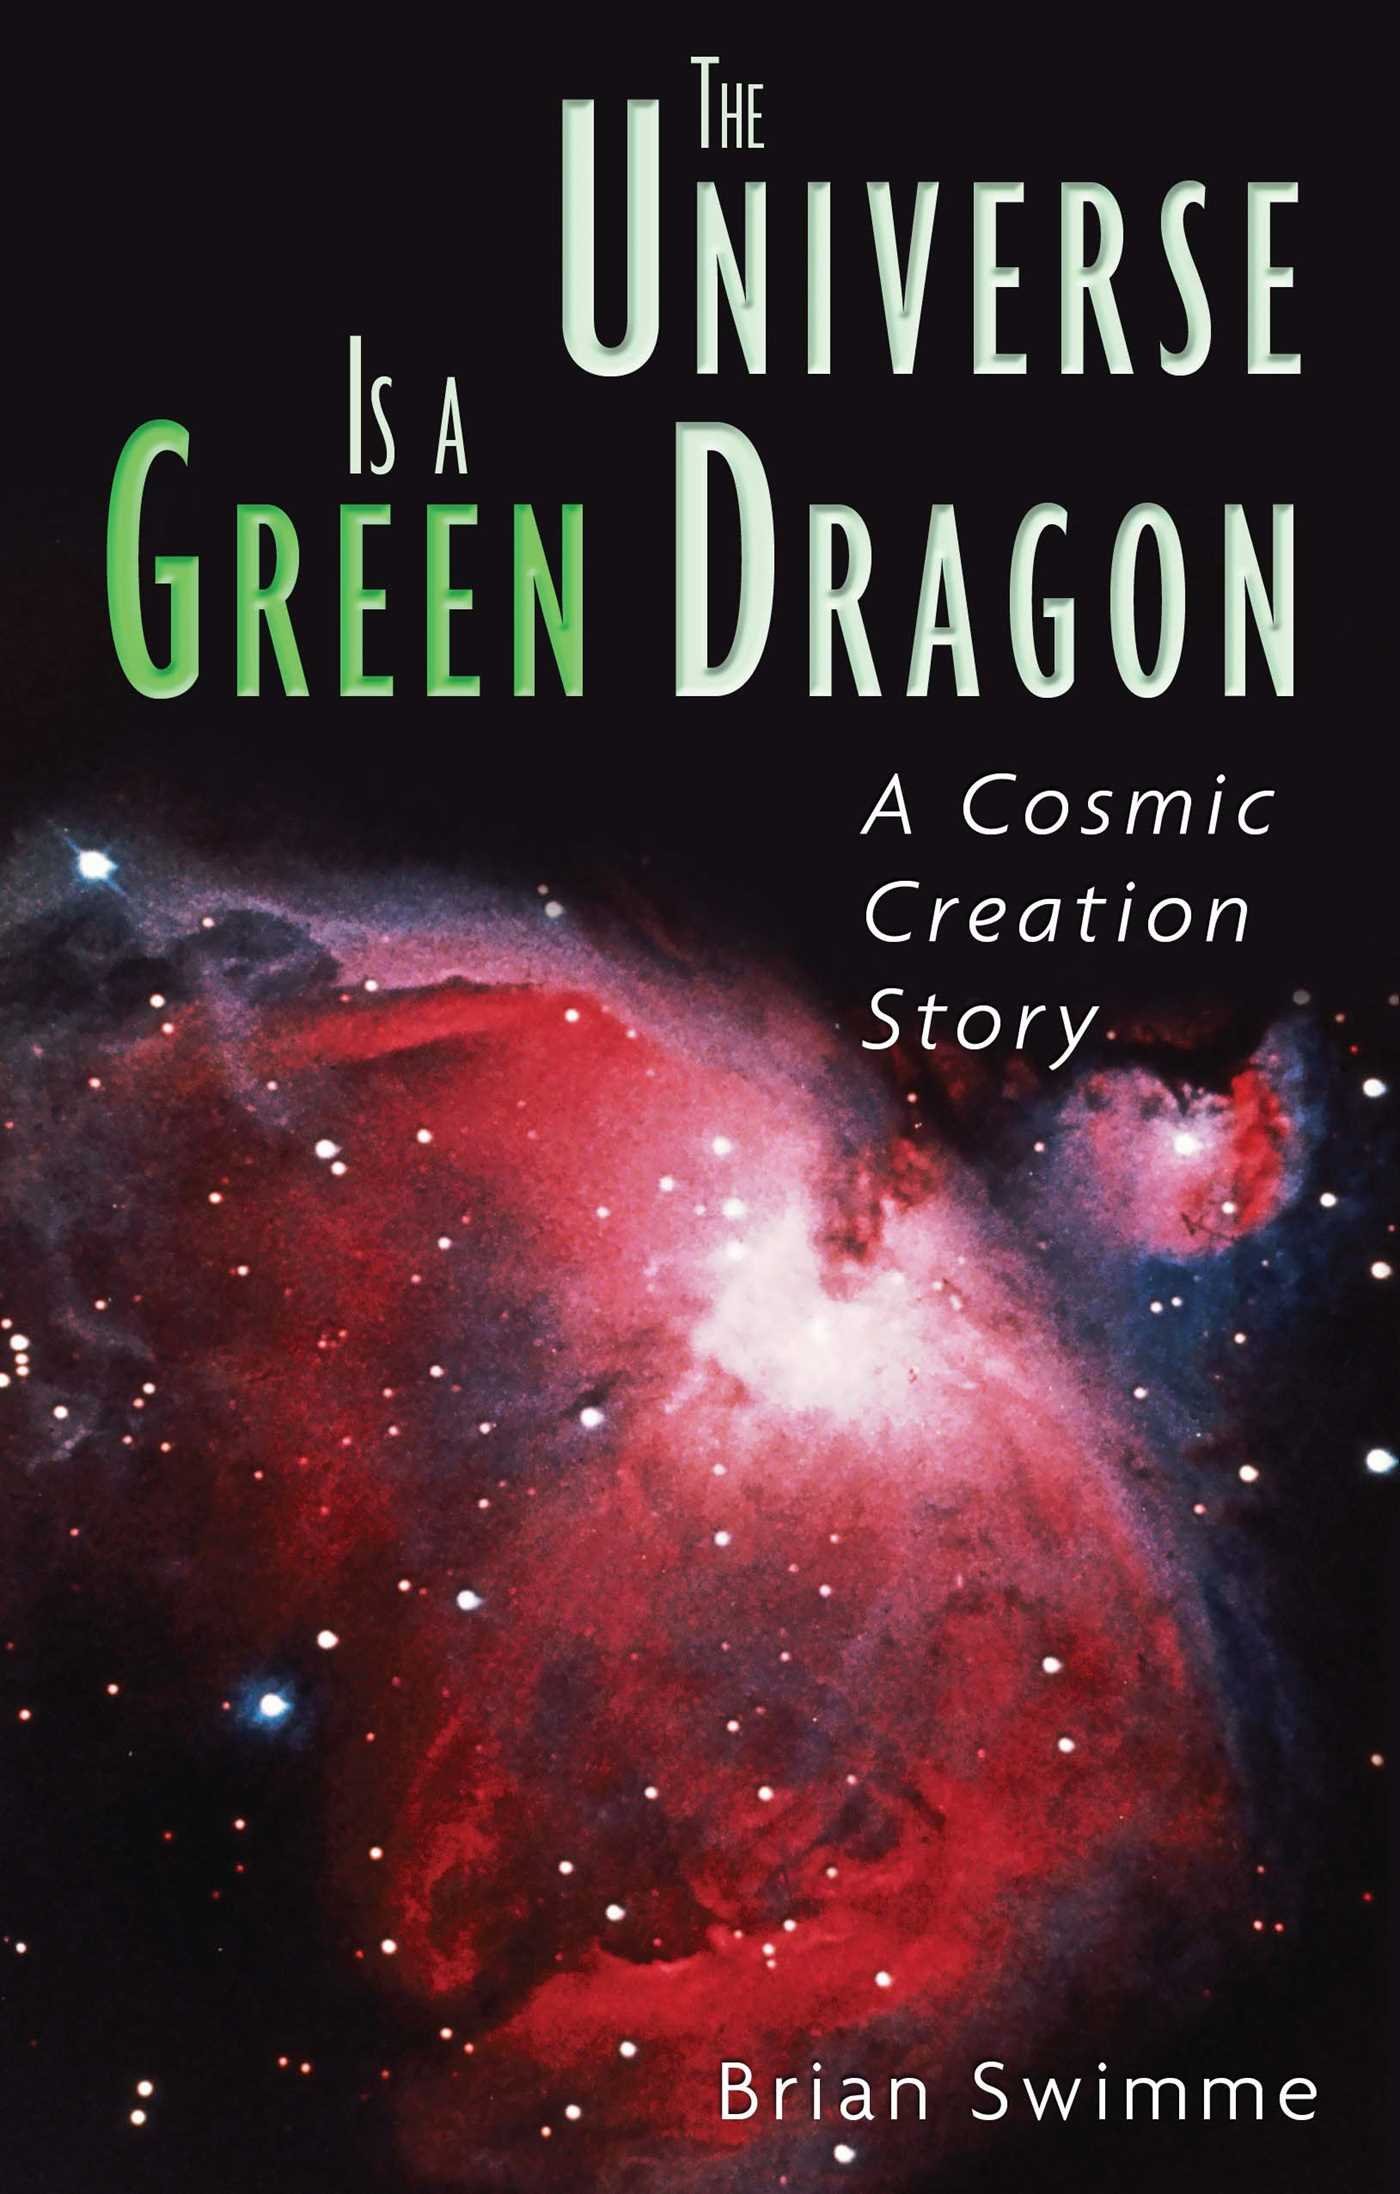 Universe-is-a-green-dragon-9780939680146_hr